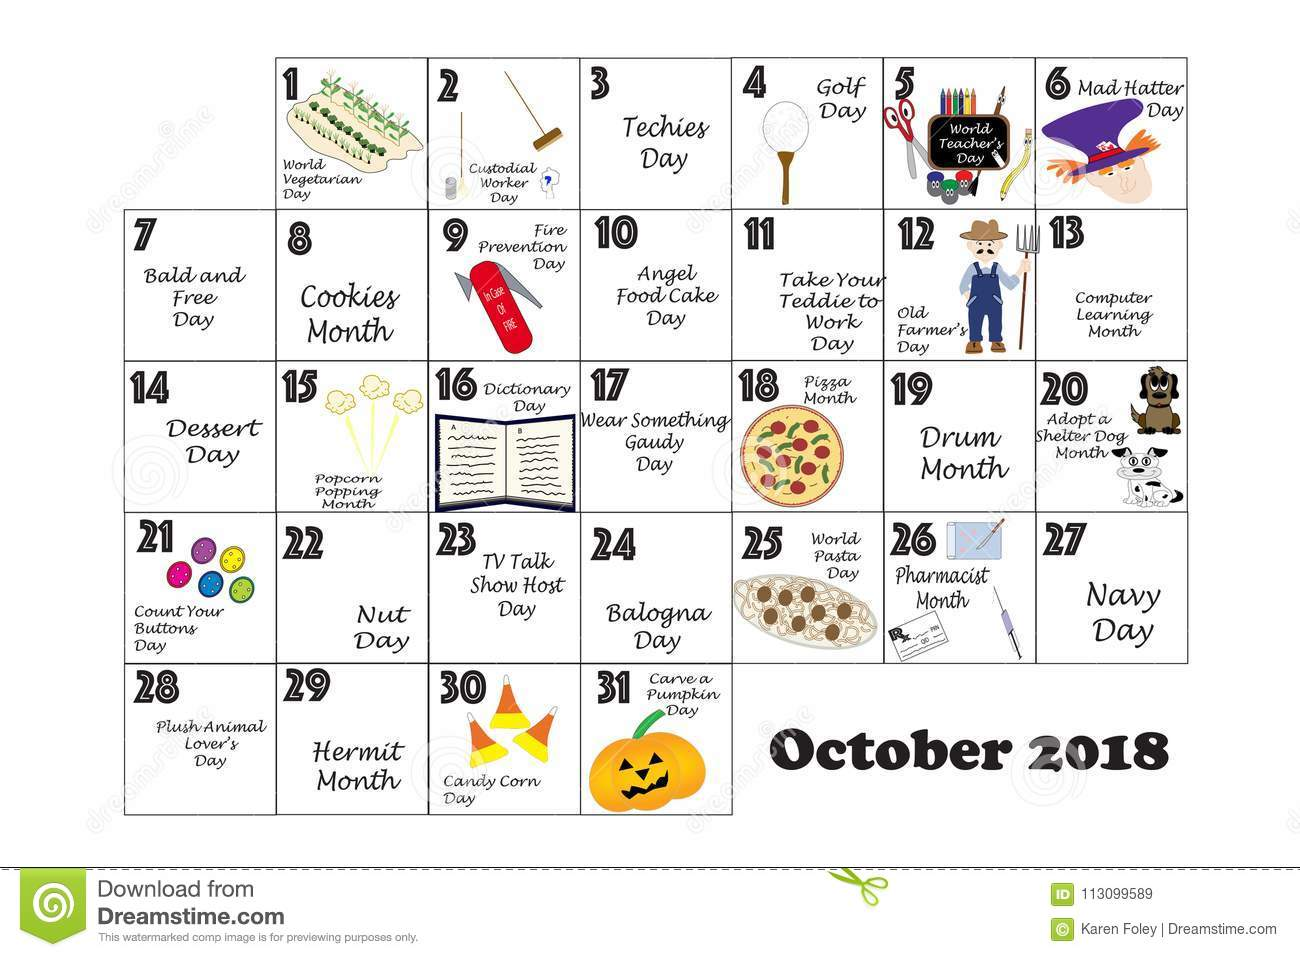 October Calendar Illustration : October quirky holidays and unusual events stock